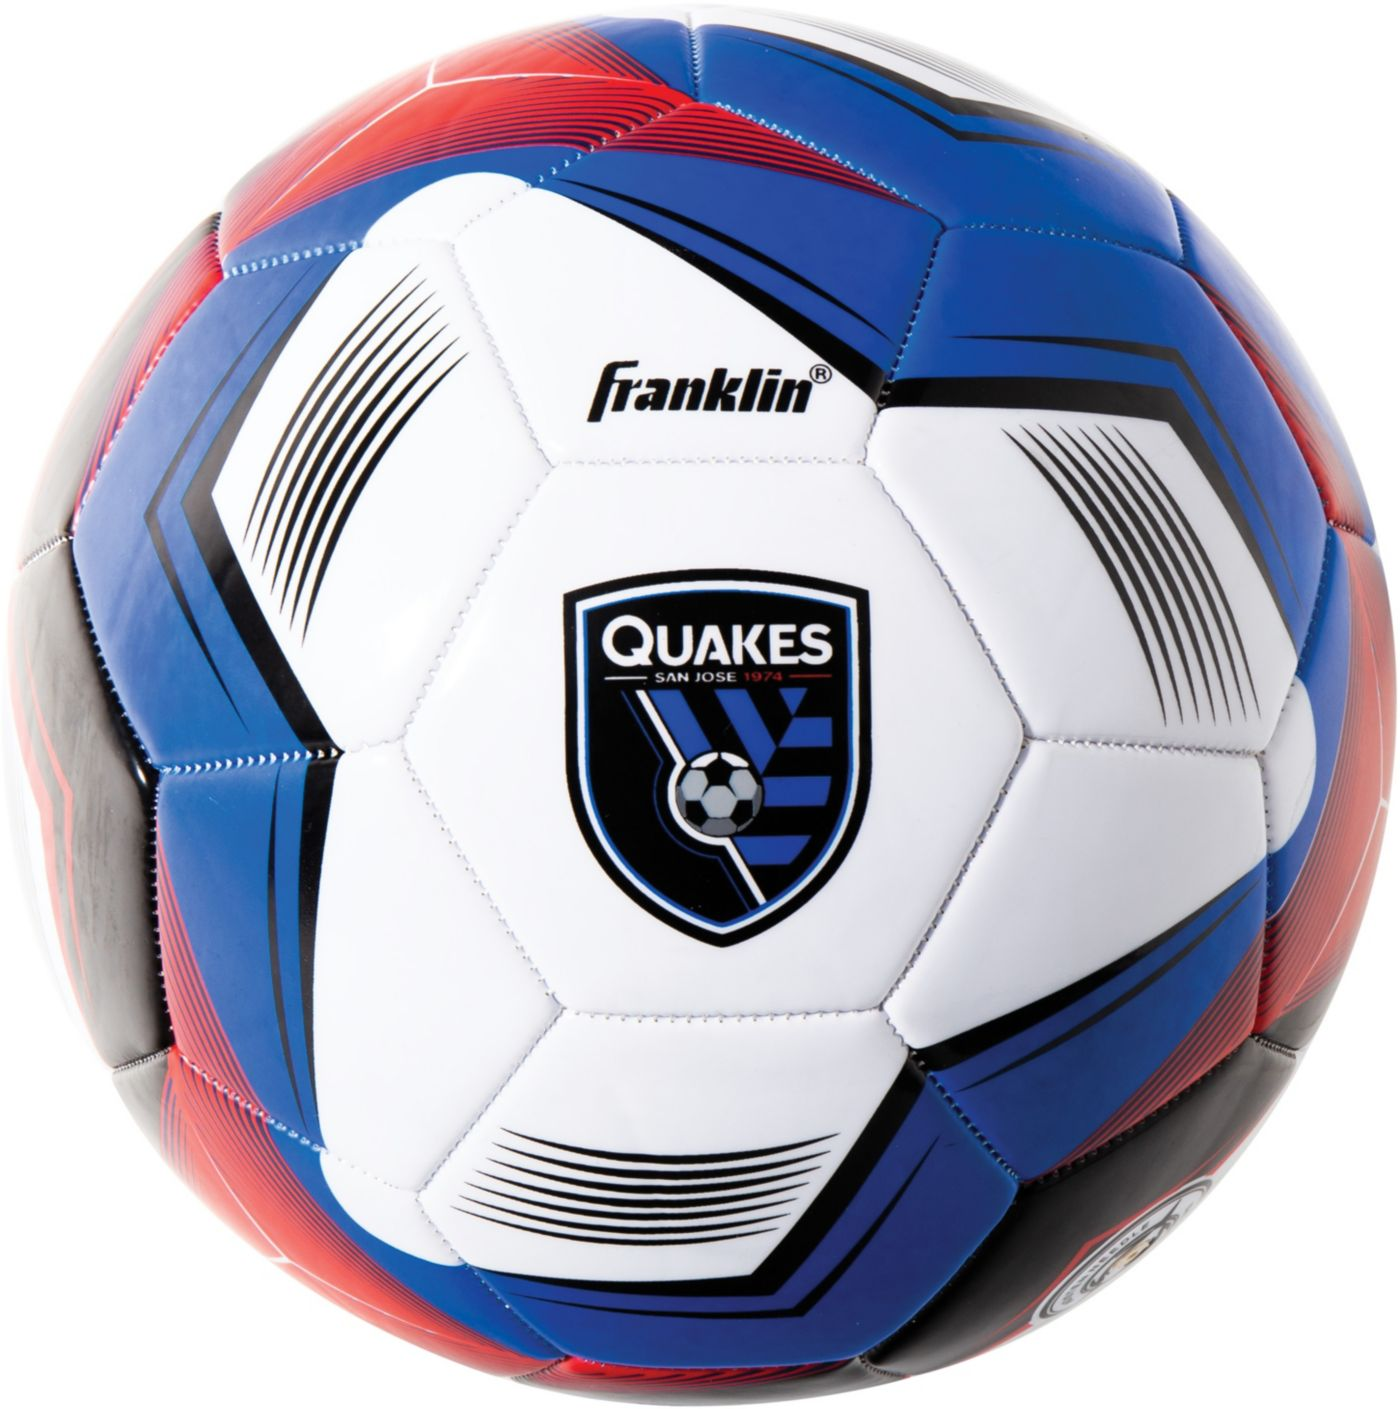 Franklin San Jose Earthquakes Size 5 Soccer Ball